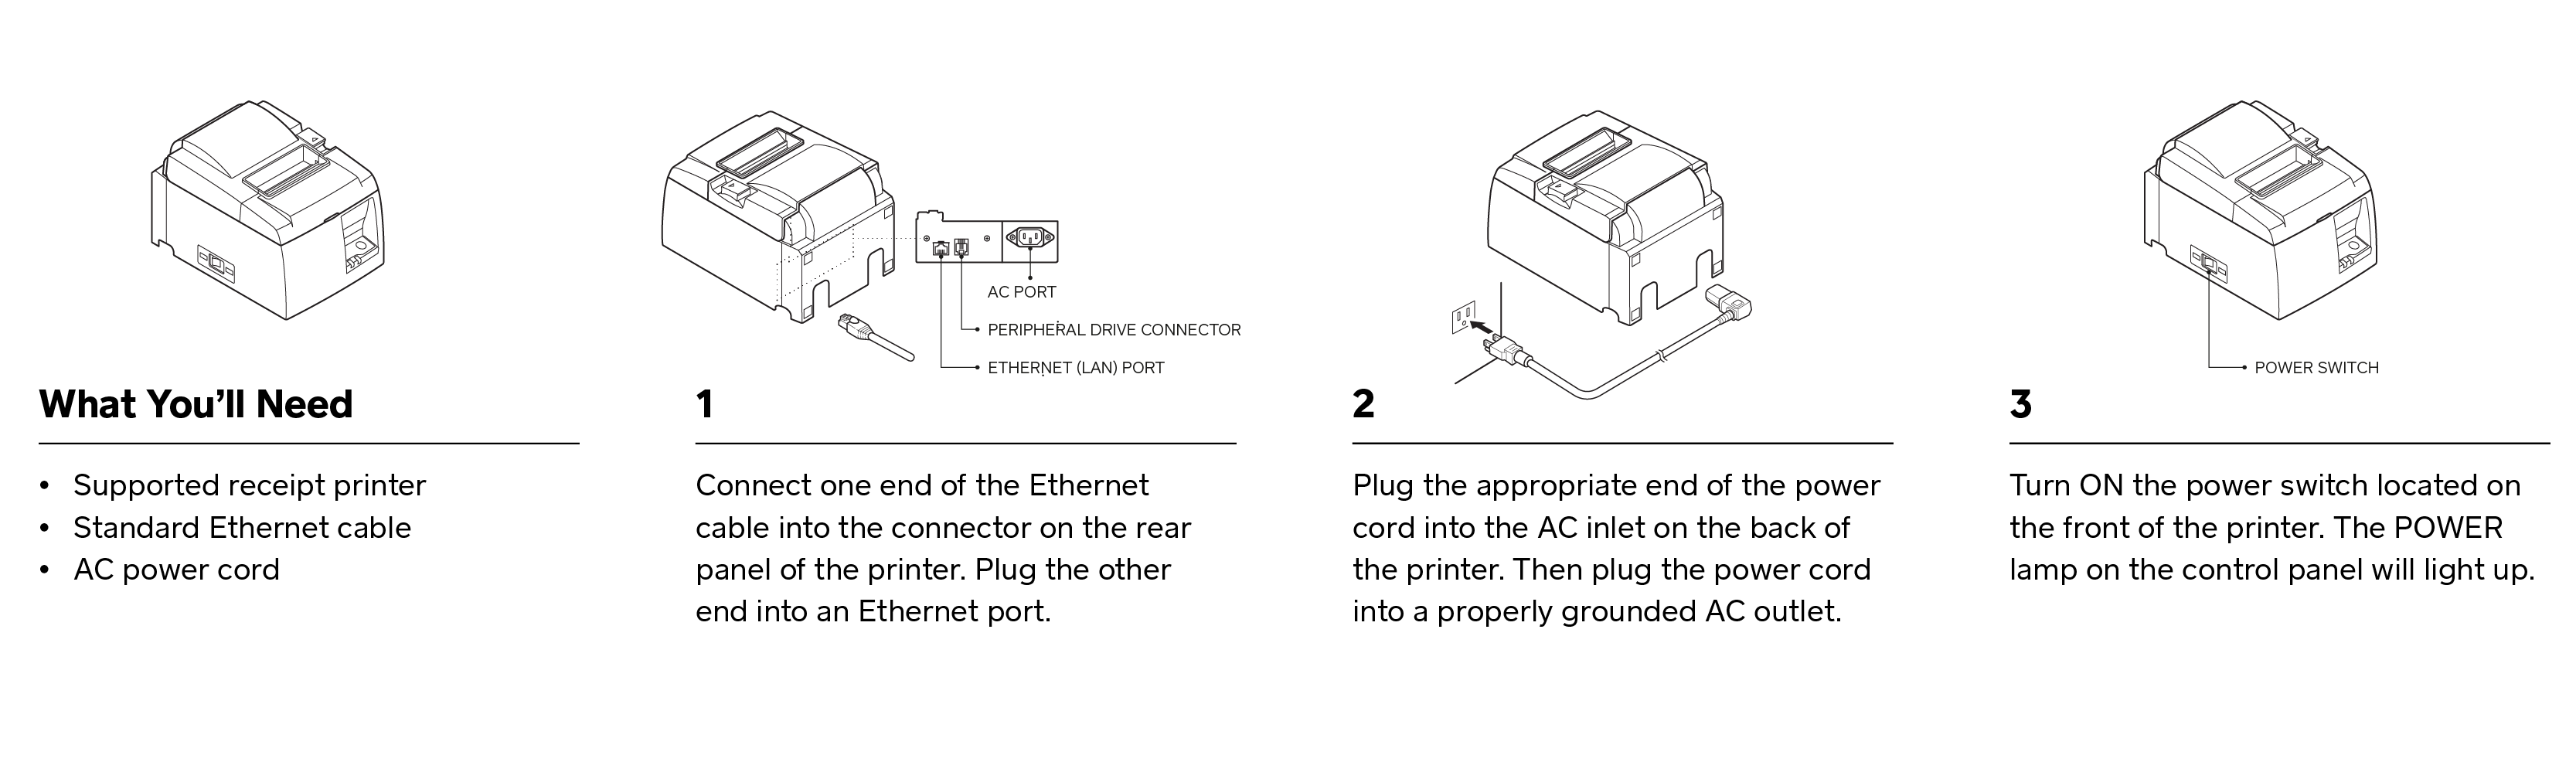 What You'll need: A supported receipt printer, a standard ethernet cable and an AC power cord for the printer